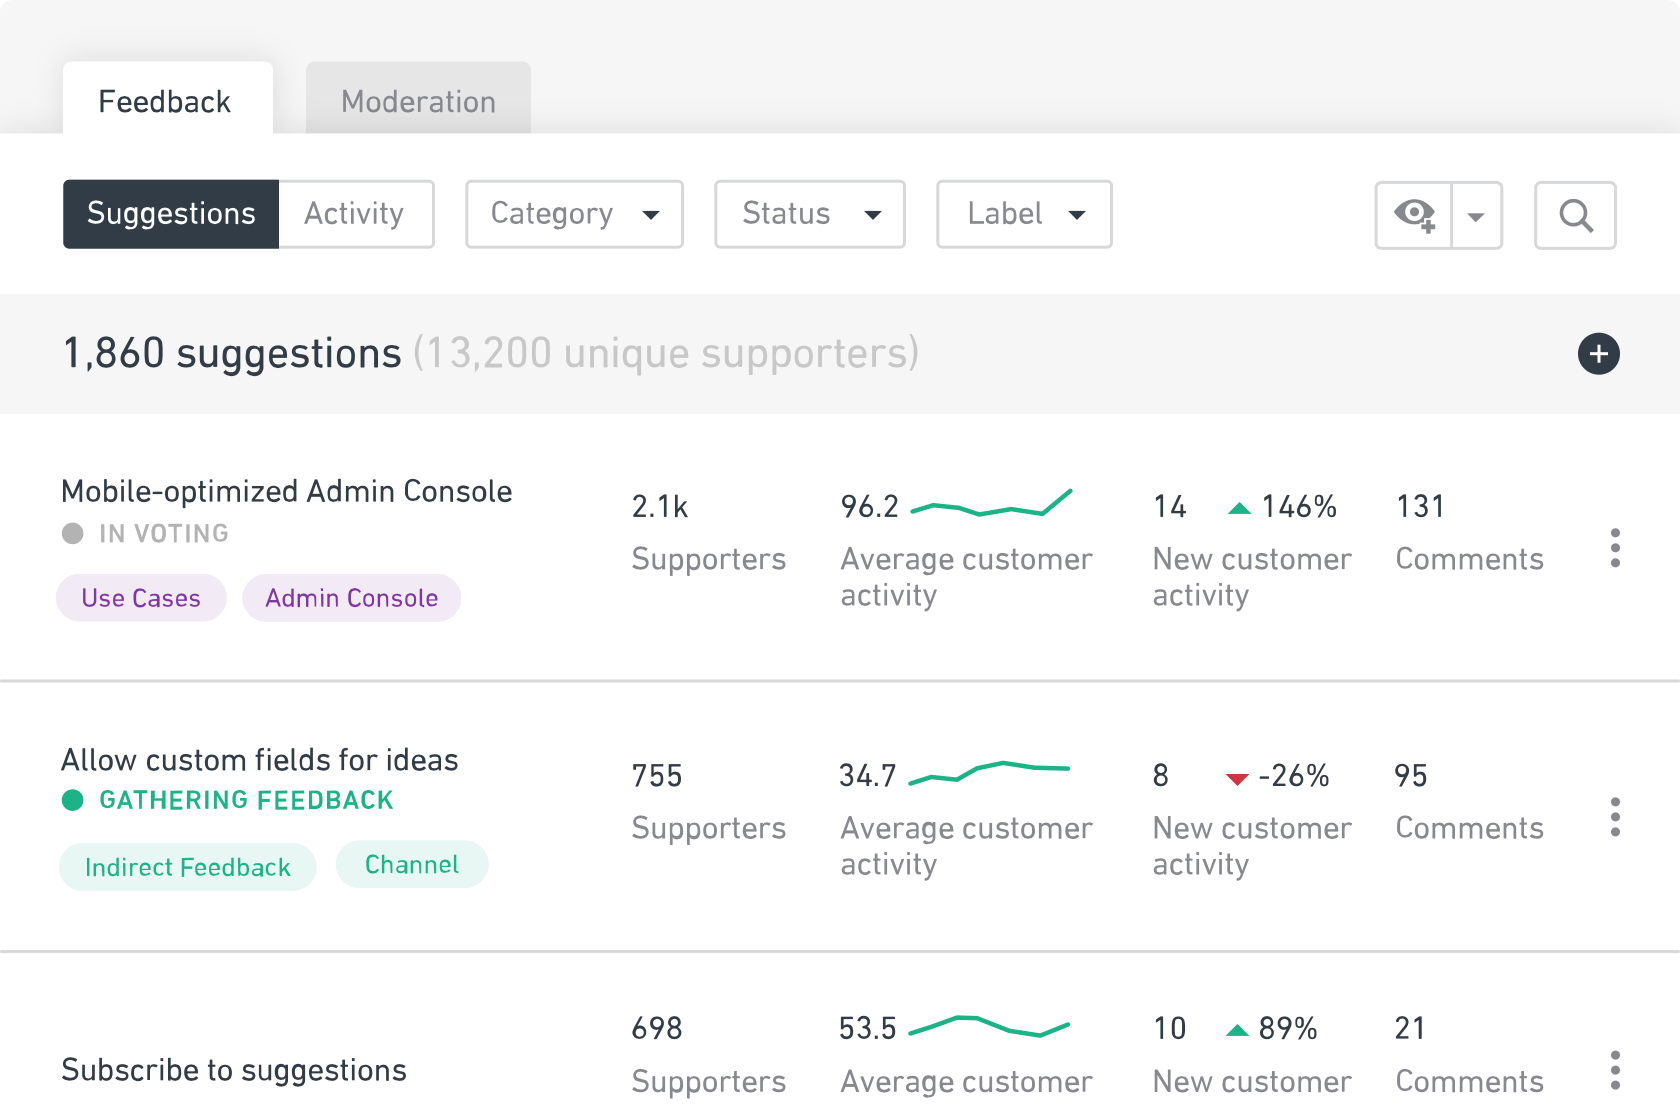 Provides information on average activity per suggestion and changes in activity over past 30 days so teams can track user information based on custom fields such as feedback, channel, or use cases